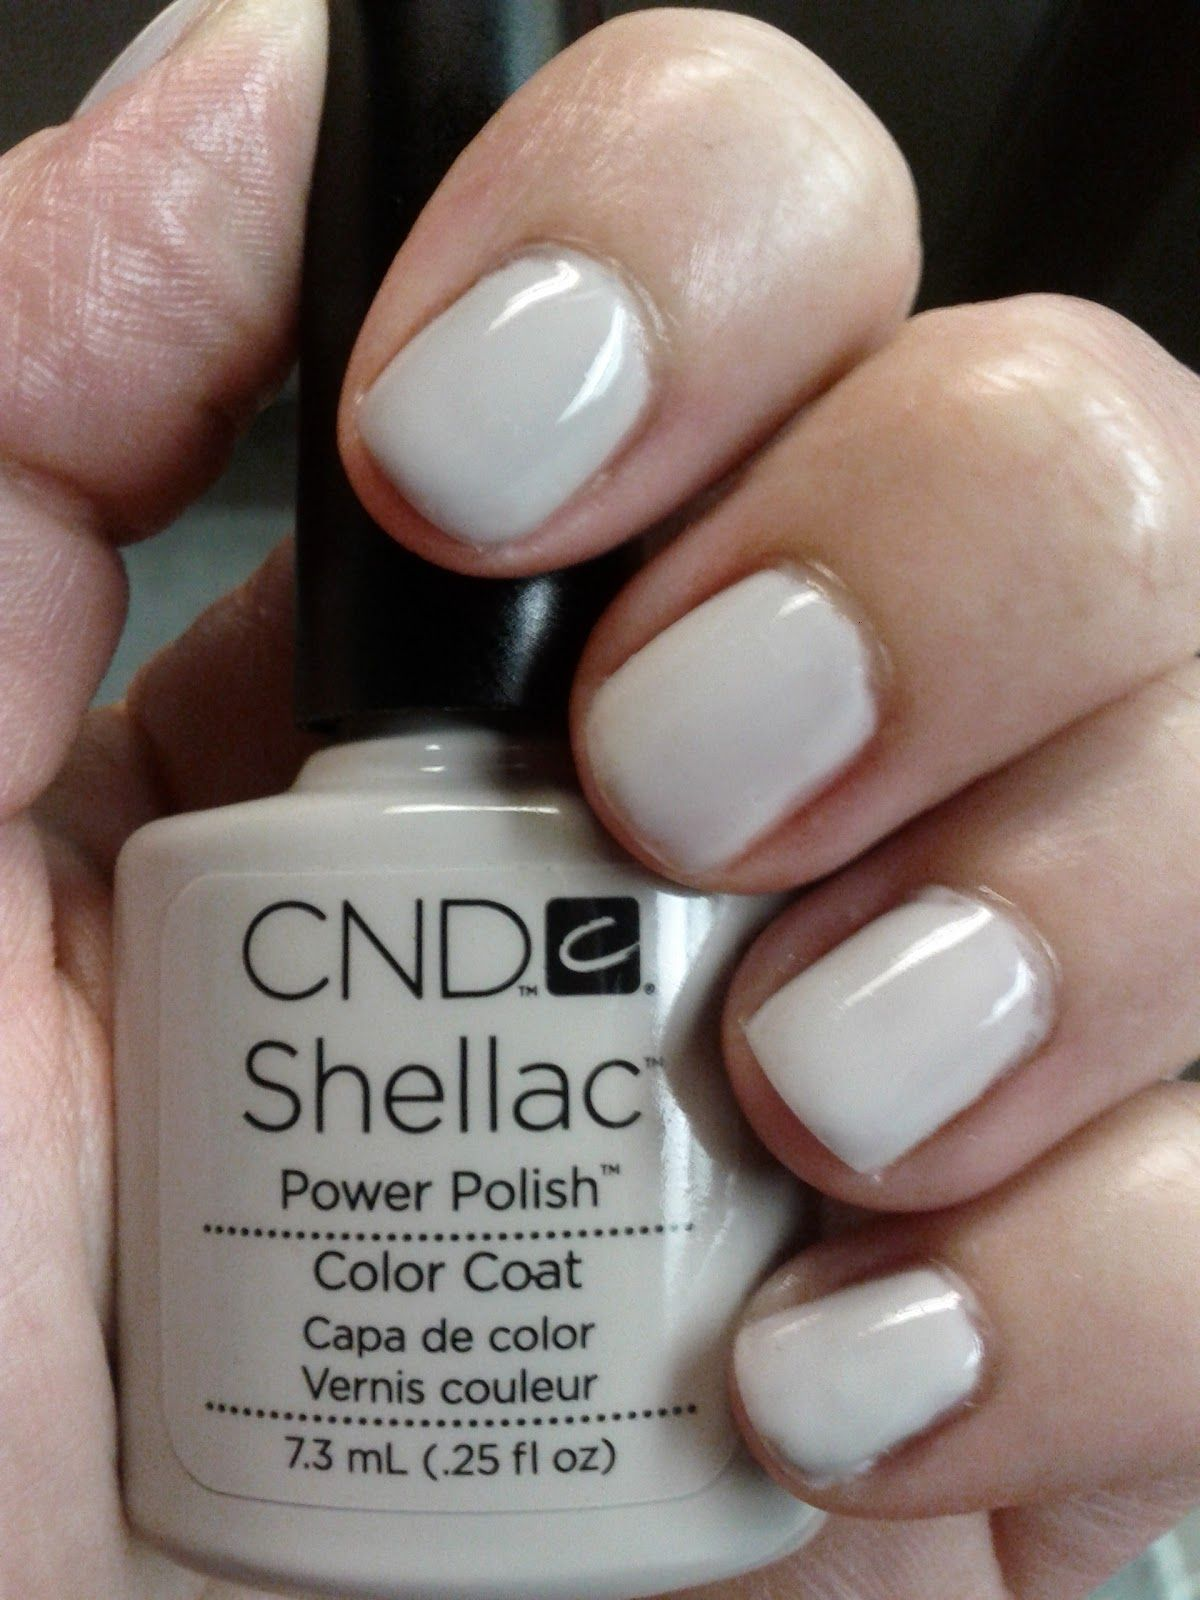 Cnd Creative Play Nail Lacquer Reviews In Nail Polish: CND Shellac In Cityscape